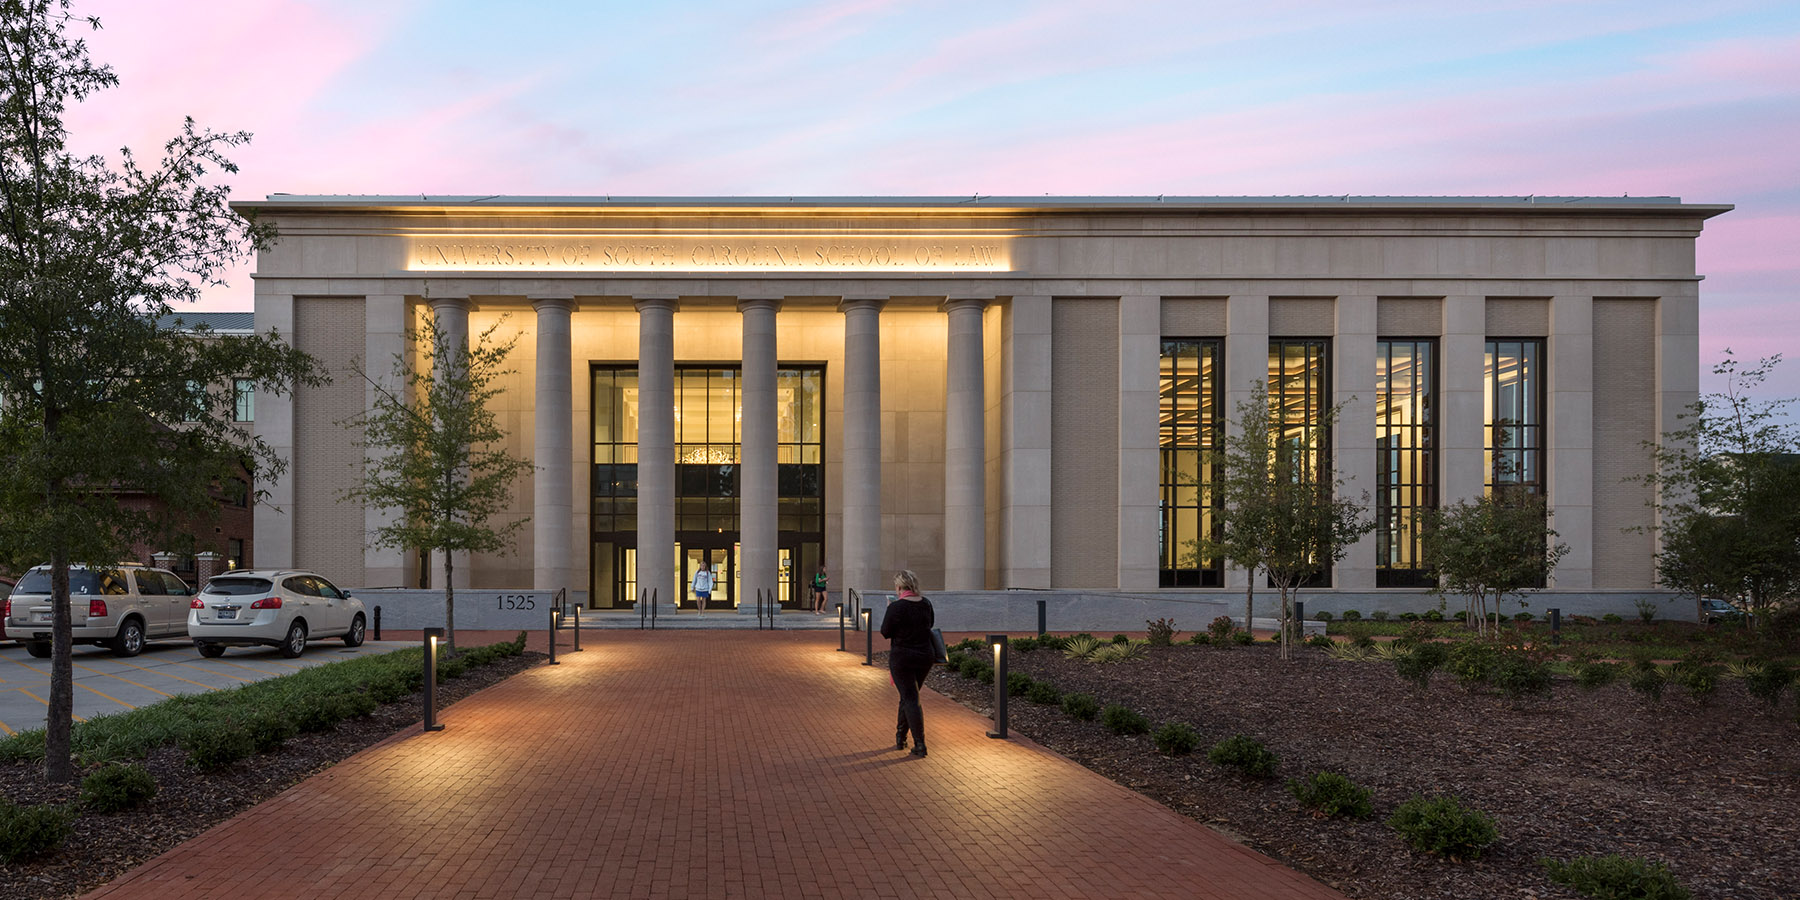 Boudreaux architects and interior designers worked with University of South Carolina on the School of Law project.